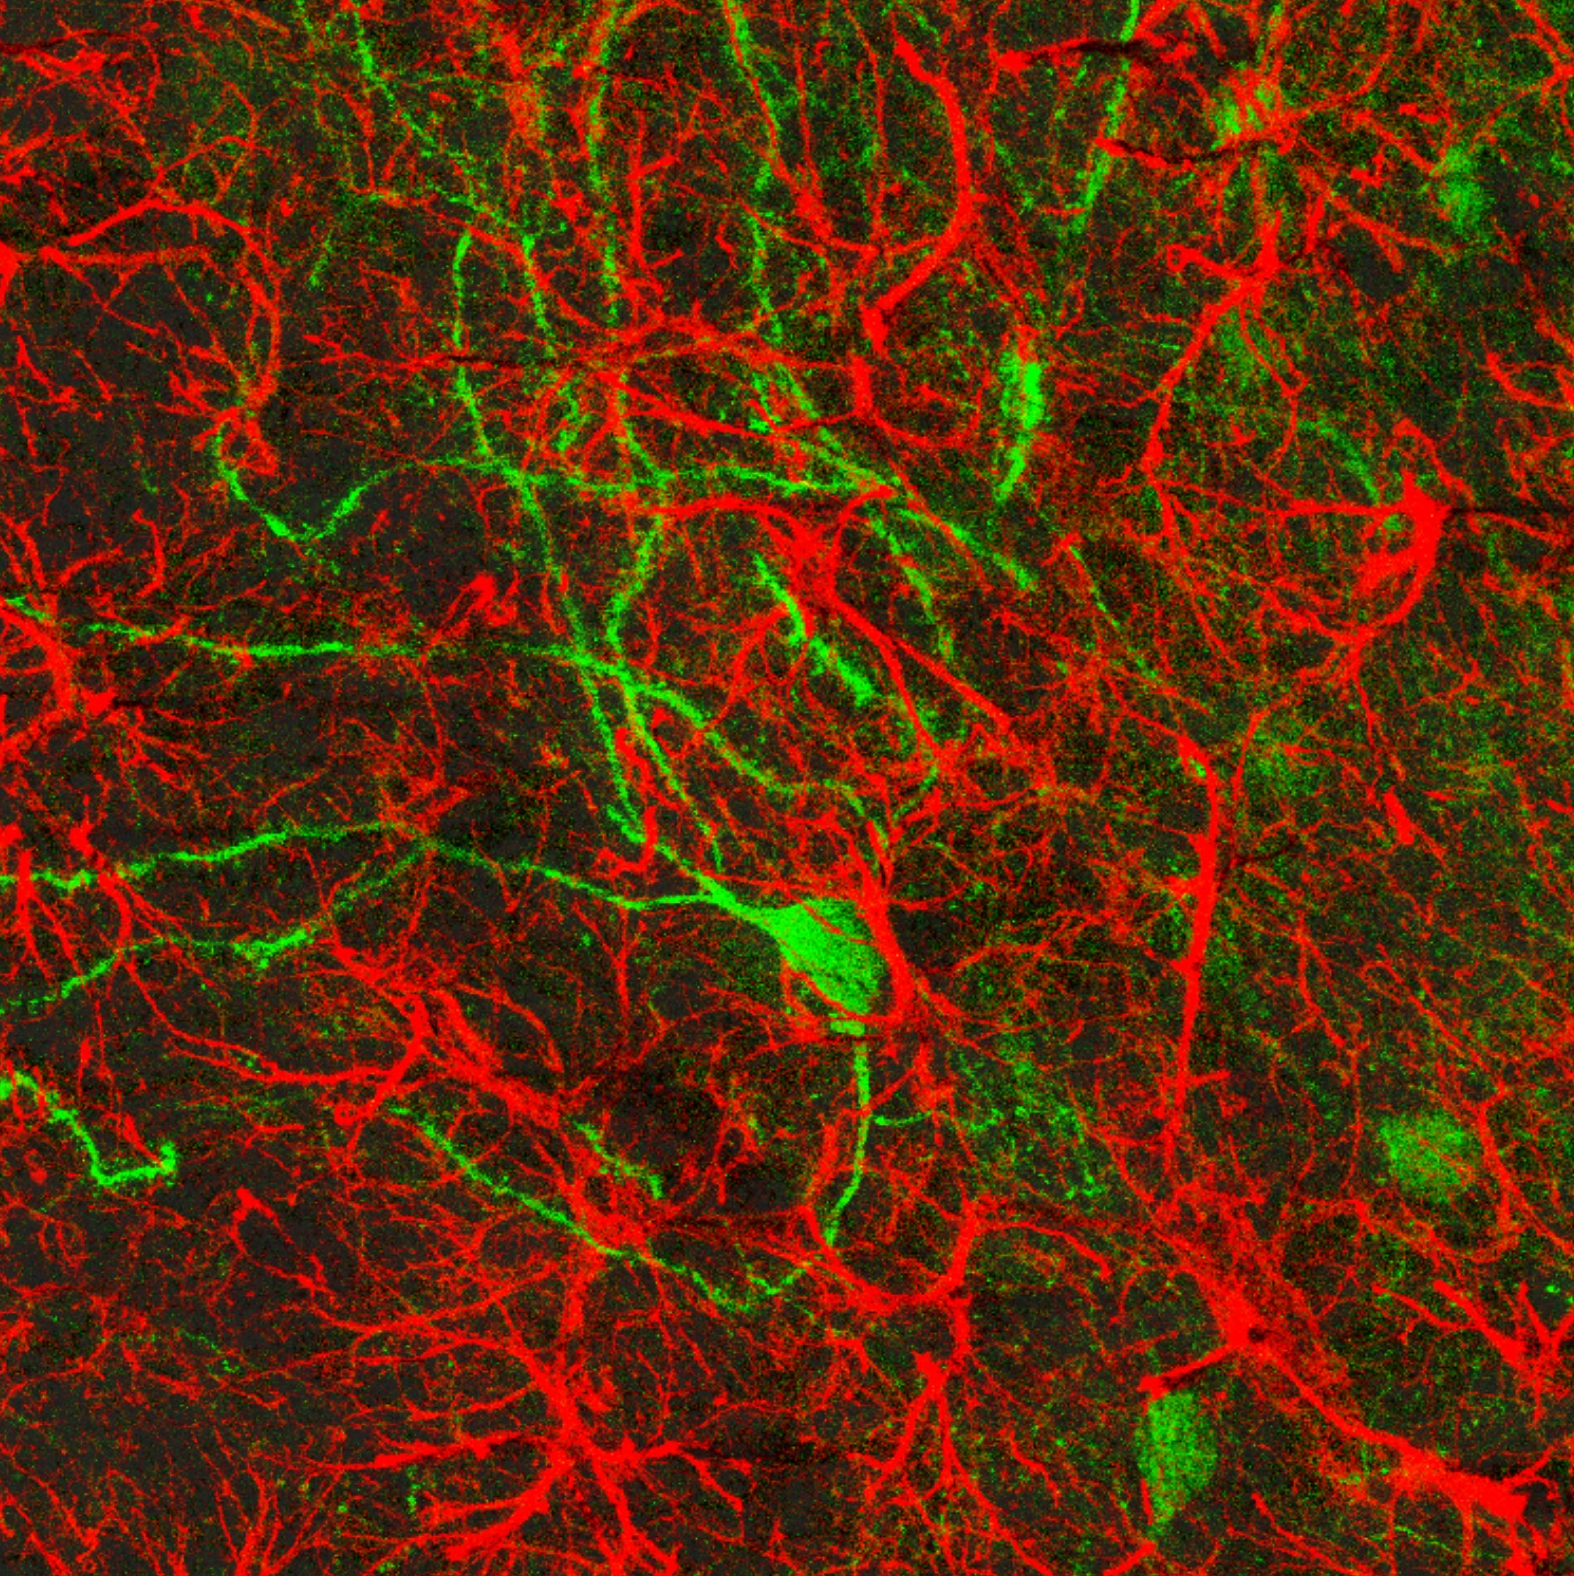 GFAP IHC (red) and viral GFP expression in NAcore MSNs